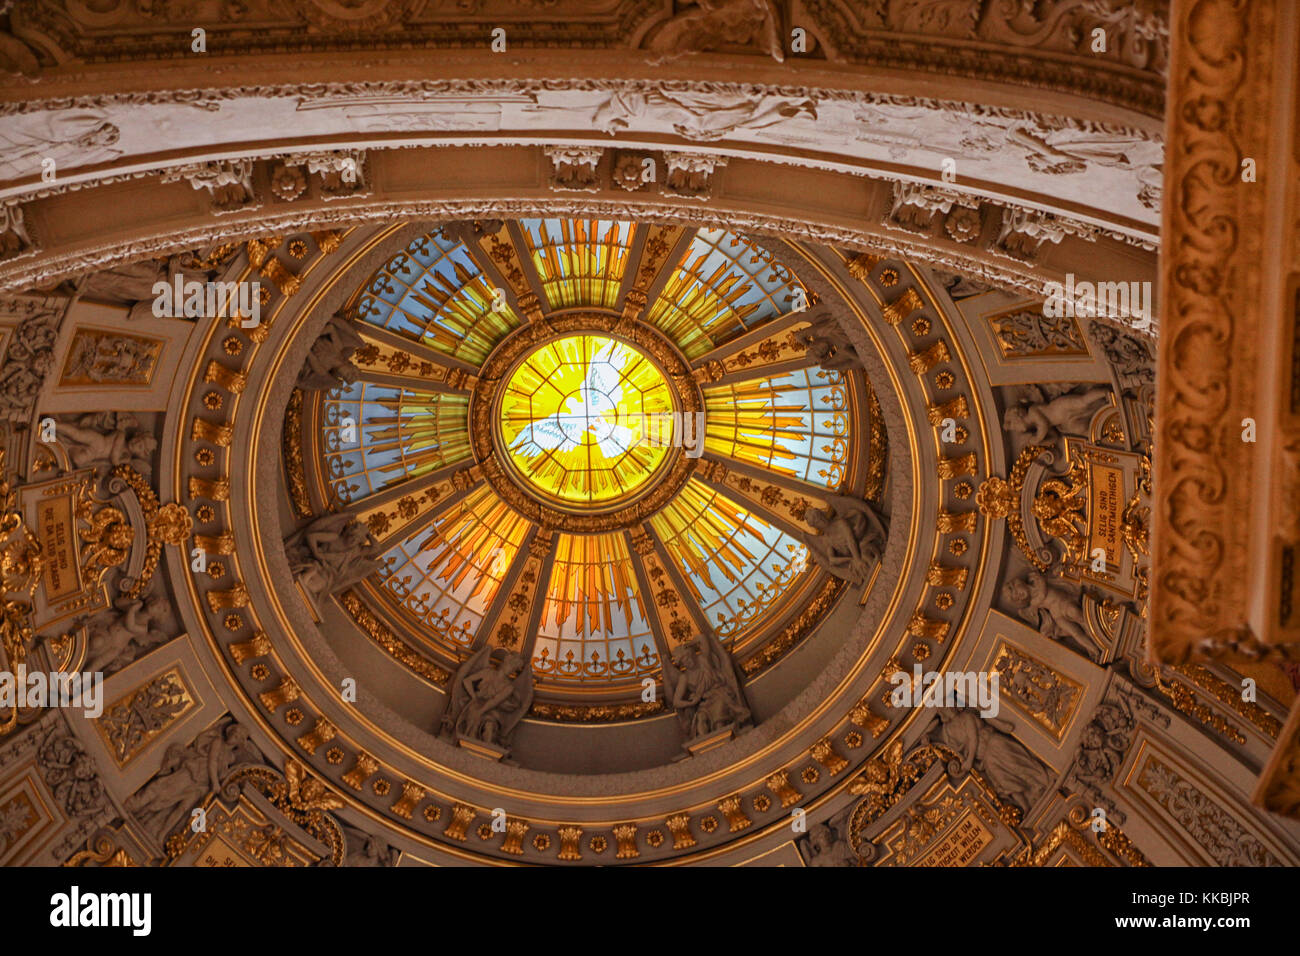 Ceiling decoration of Berlin cathedral (Berliner Dom). The current building was finished in 1905. - Stock Image